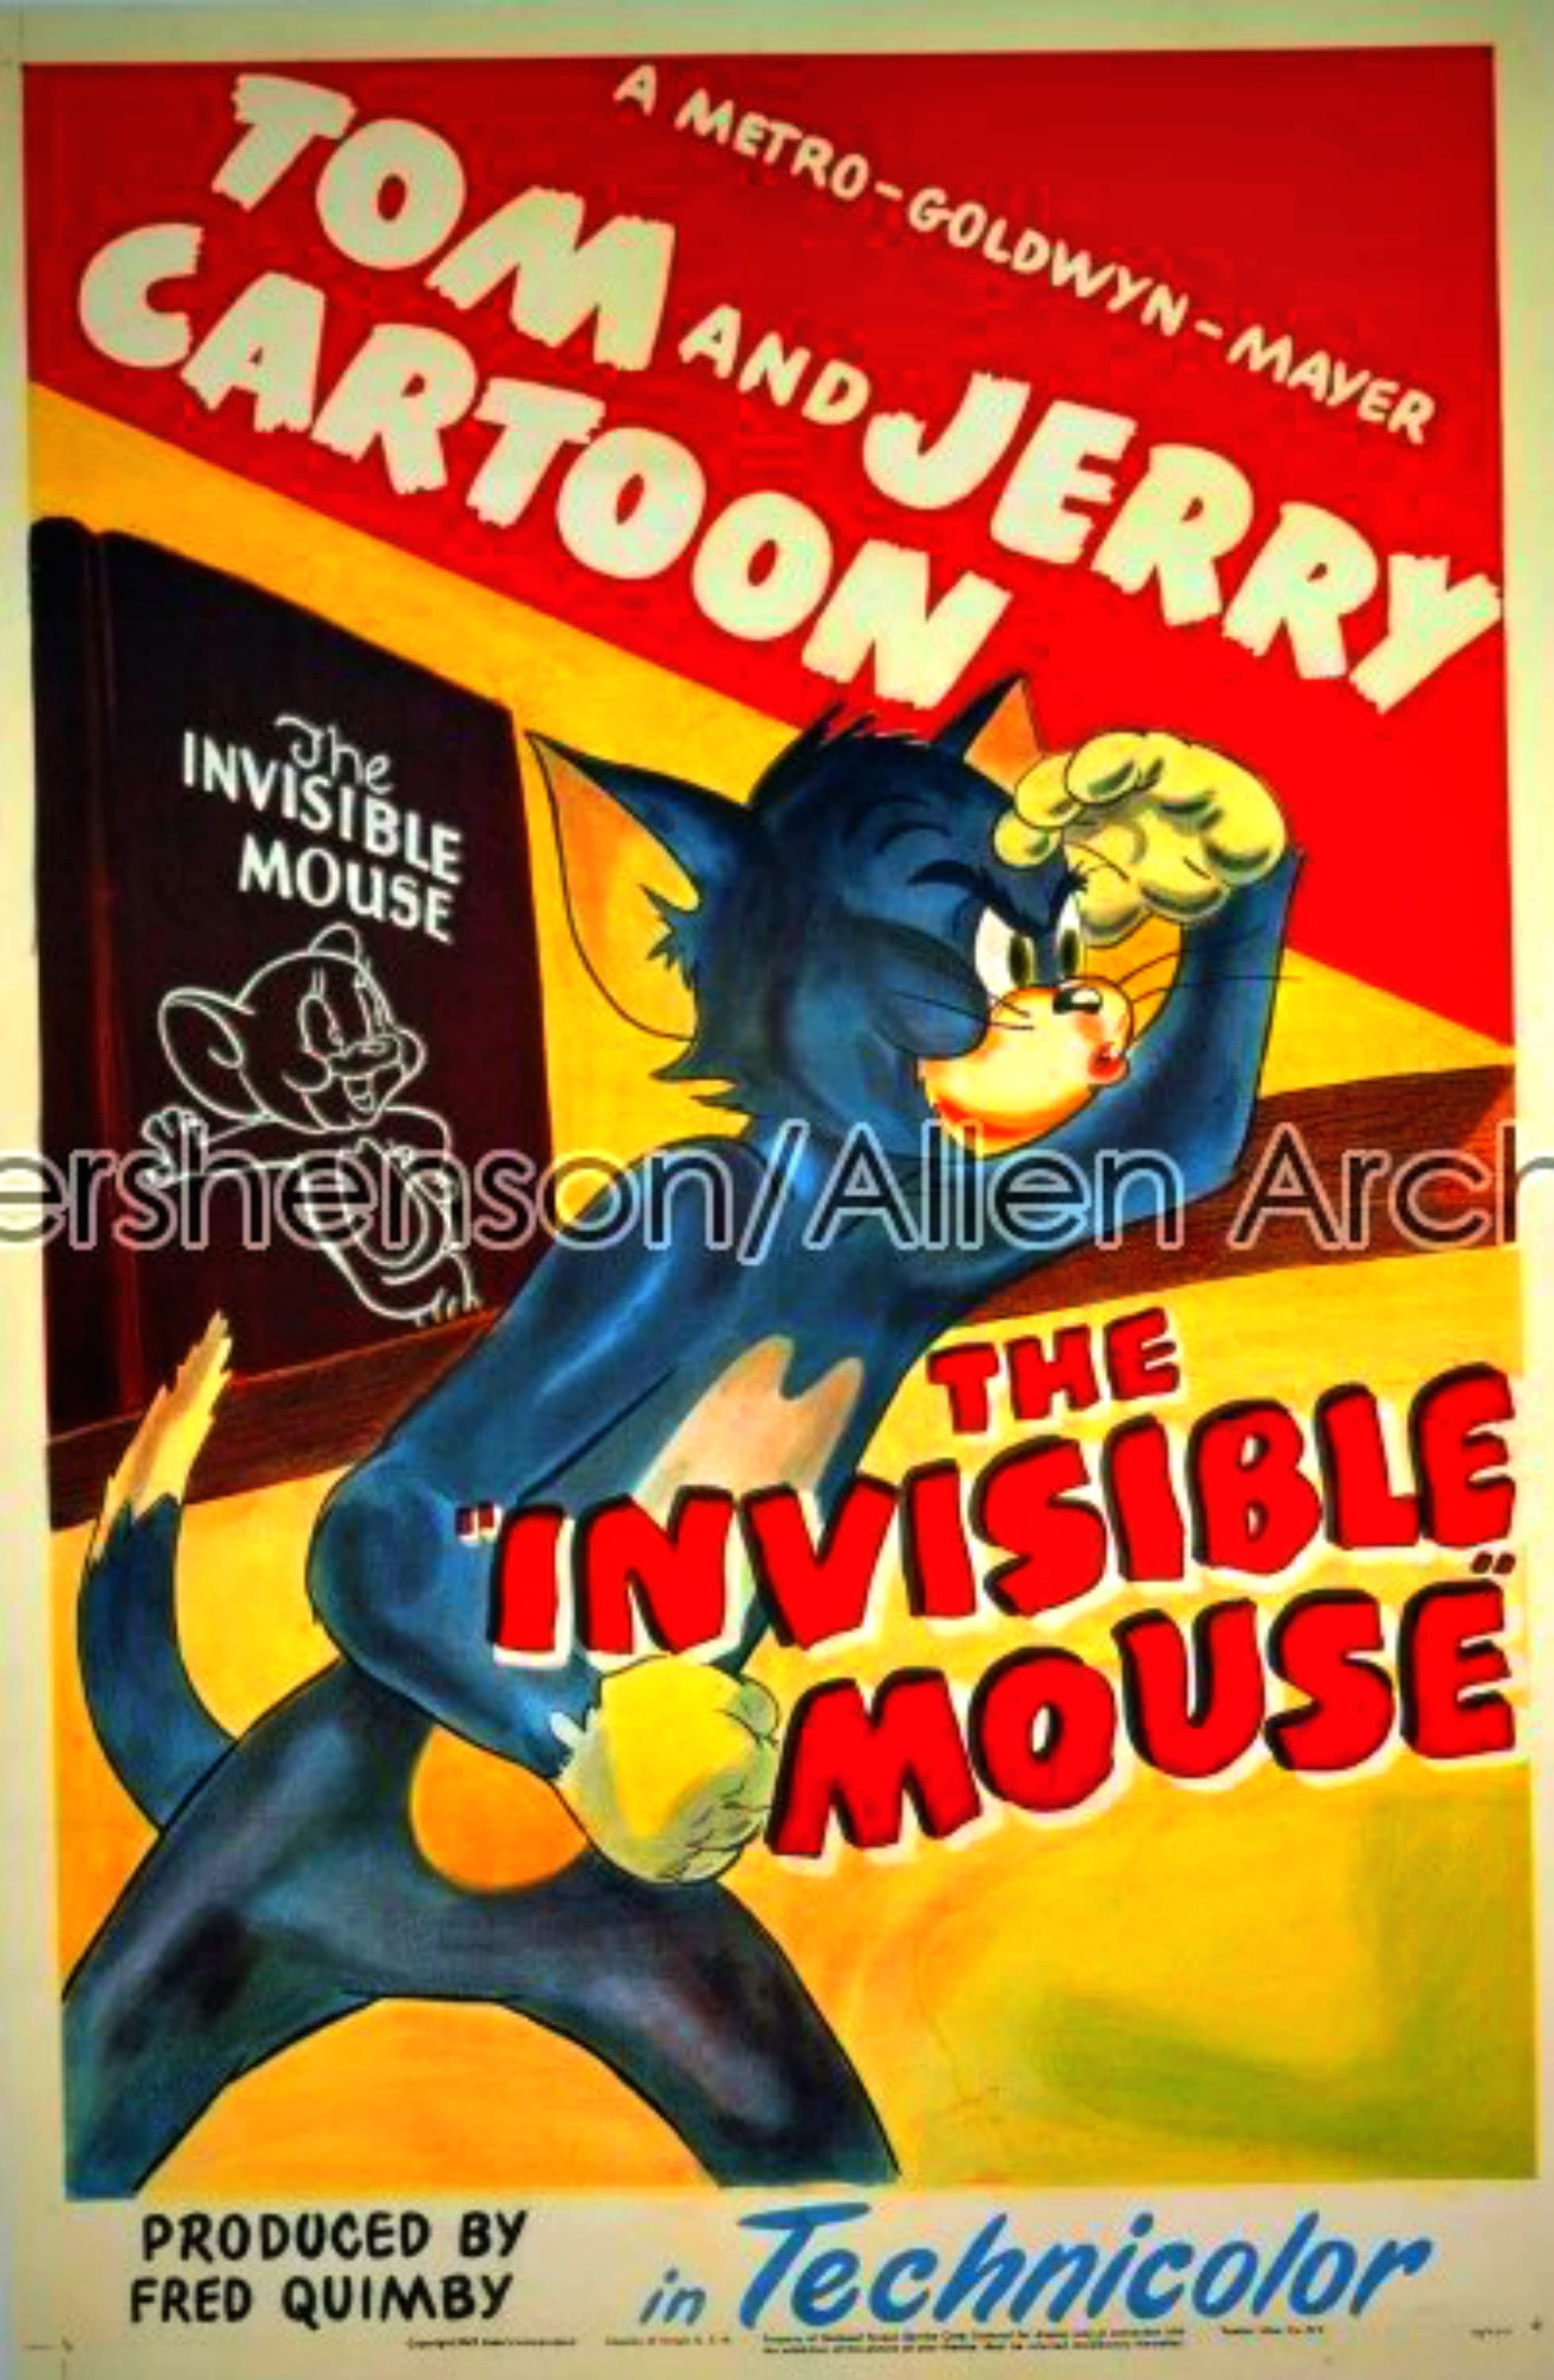 The Invisible Mouse